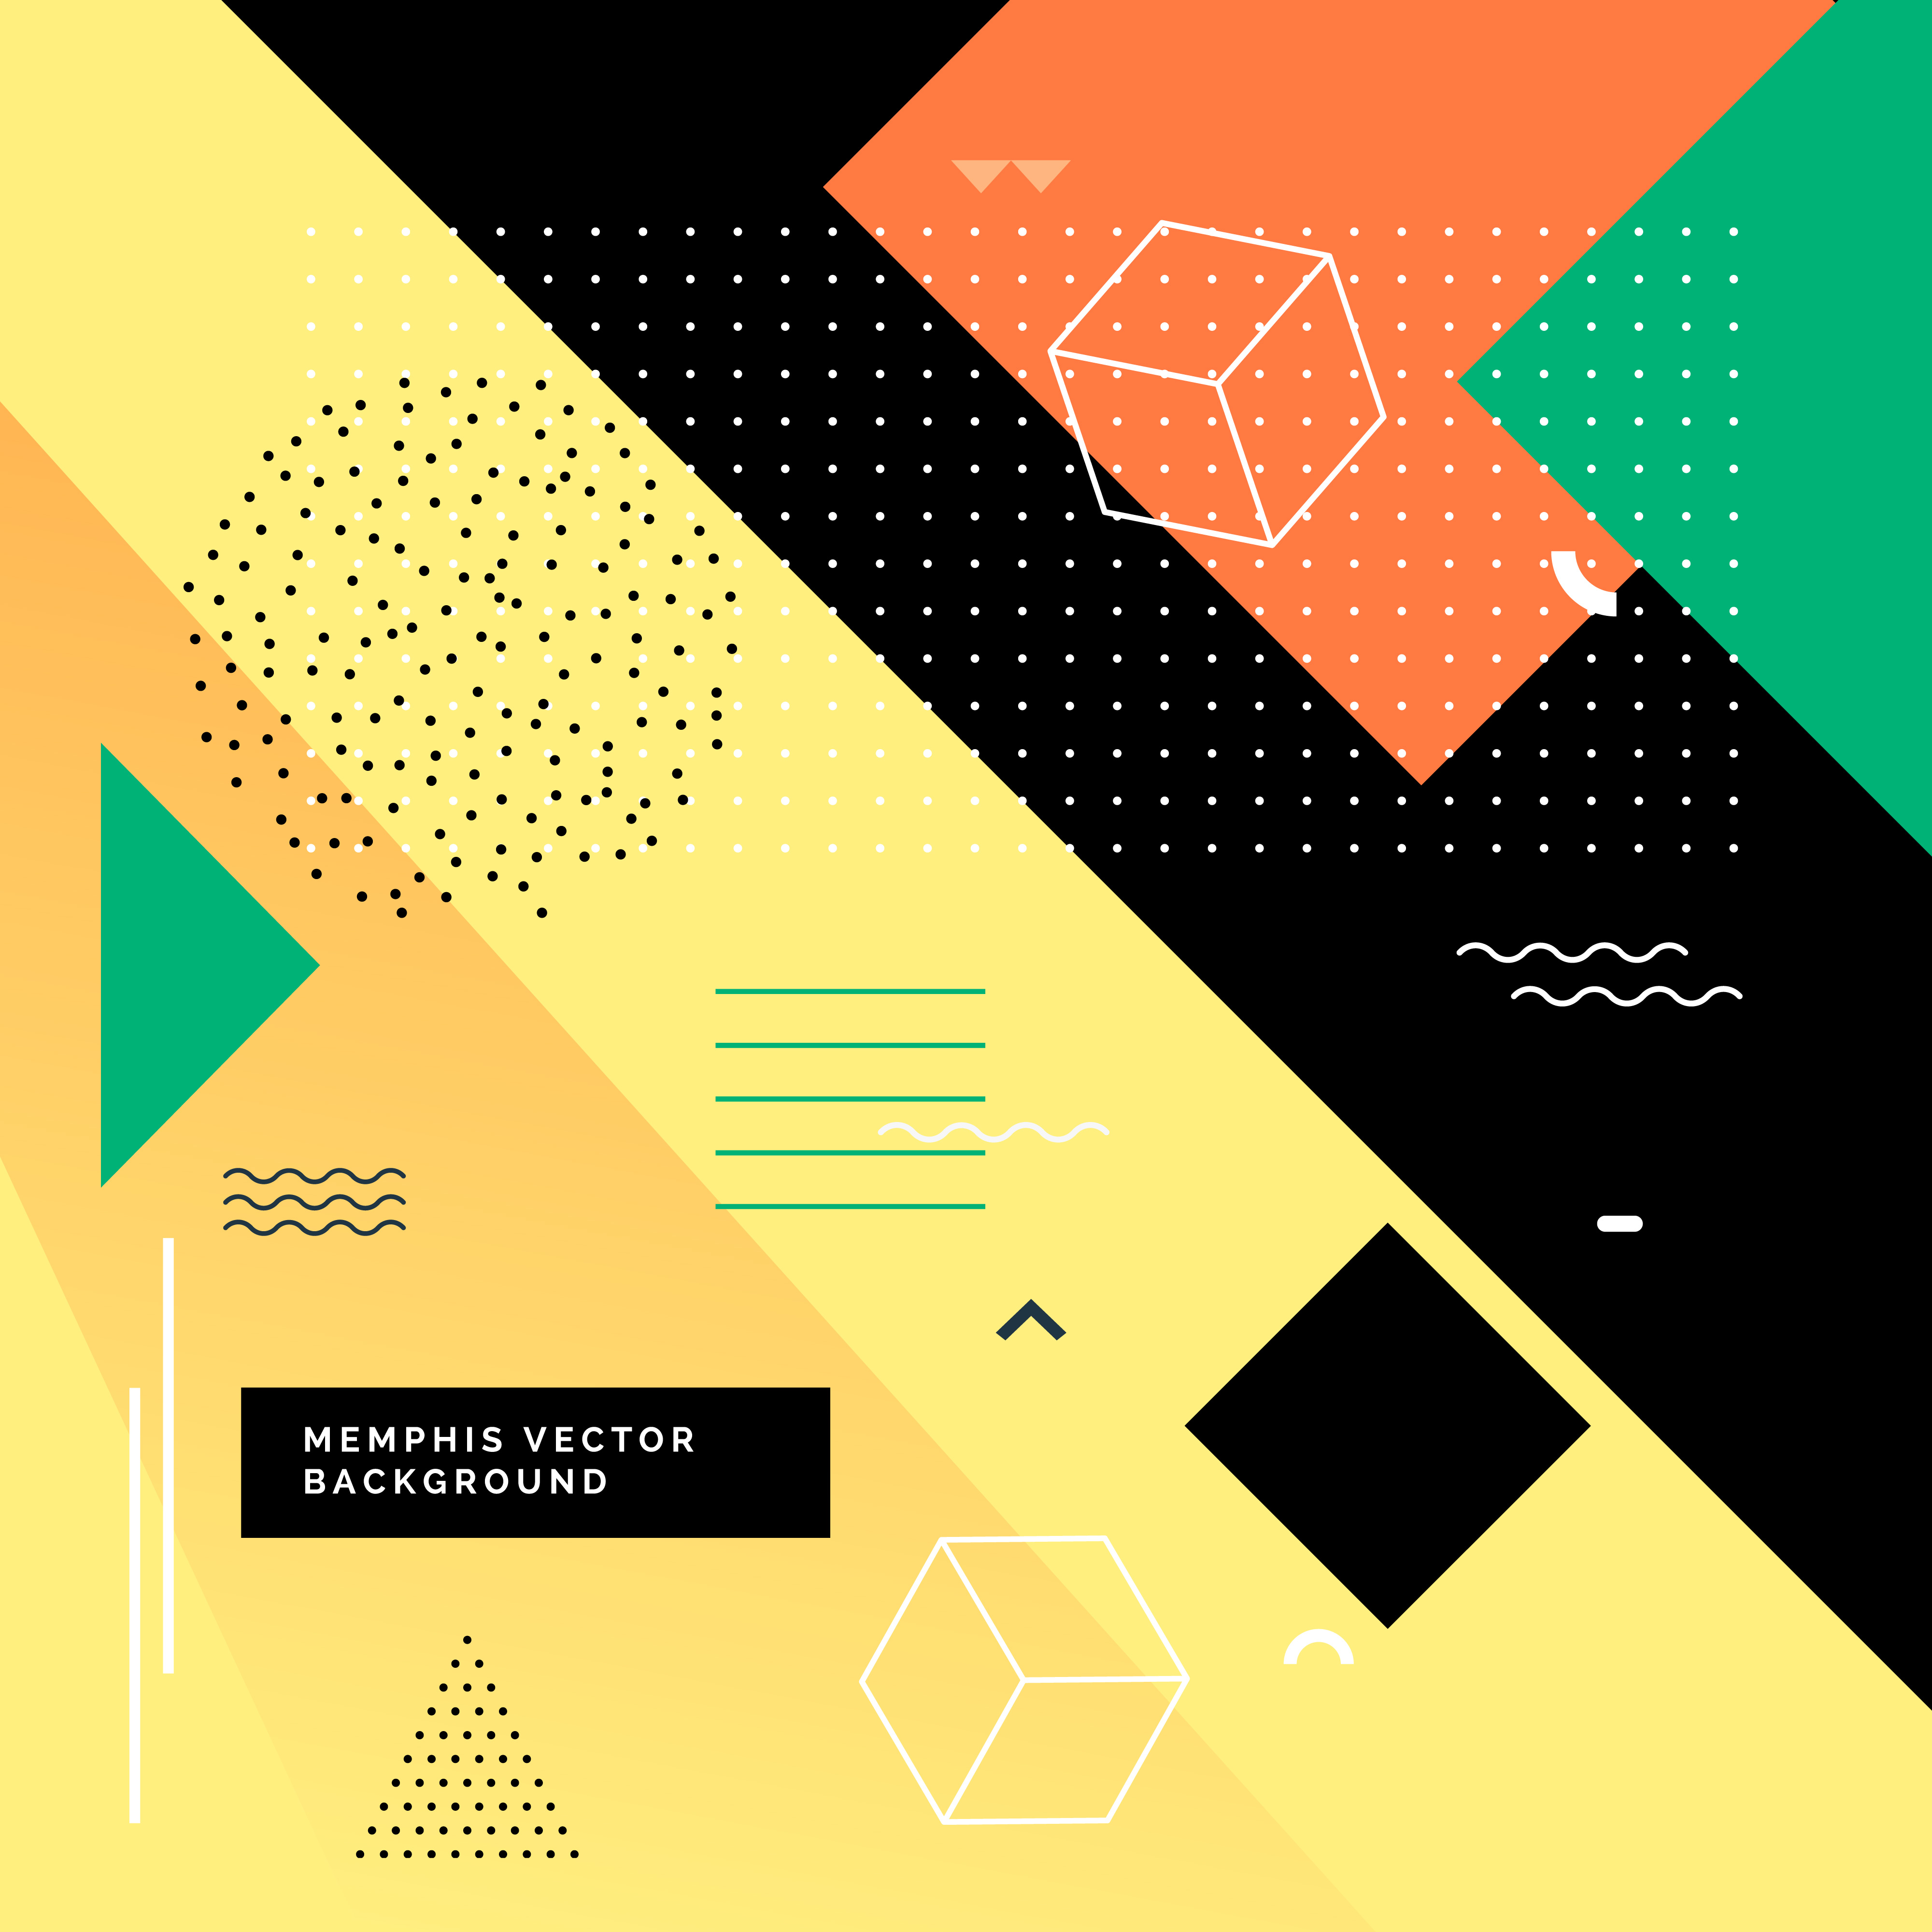 Colorful Memphis Background With Geometric Shapes